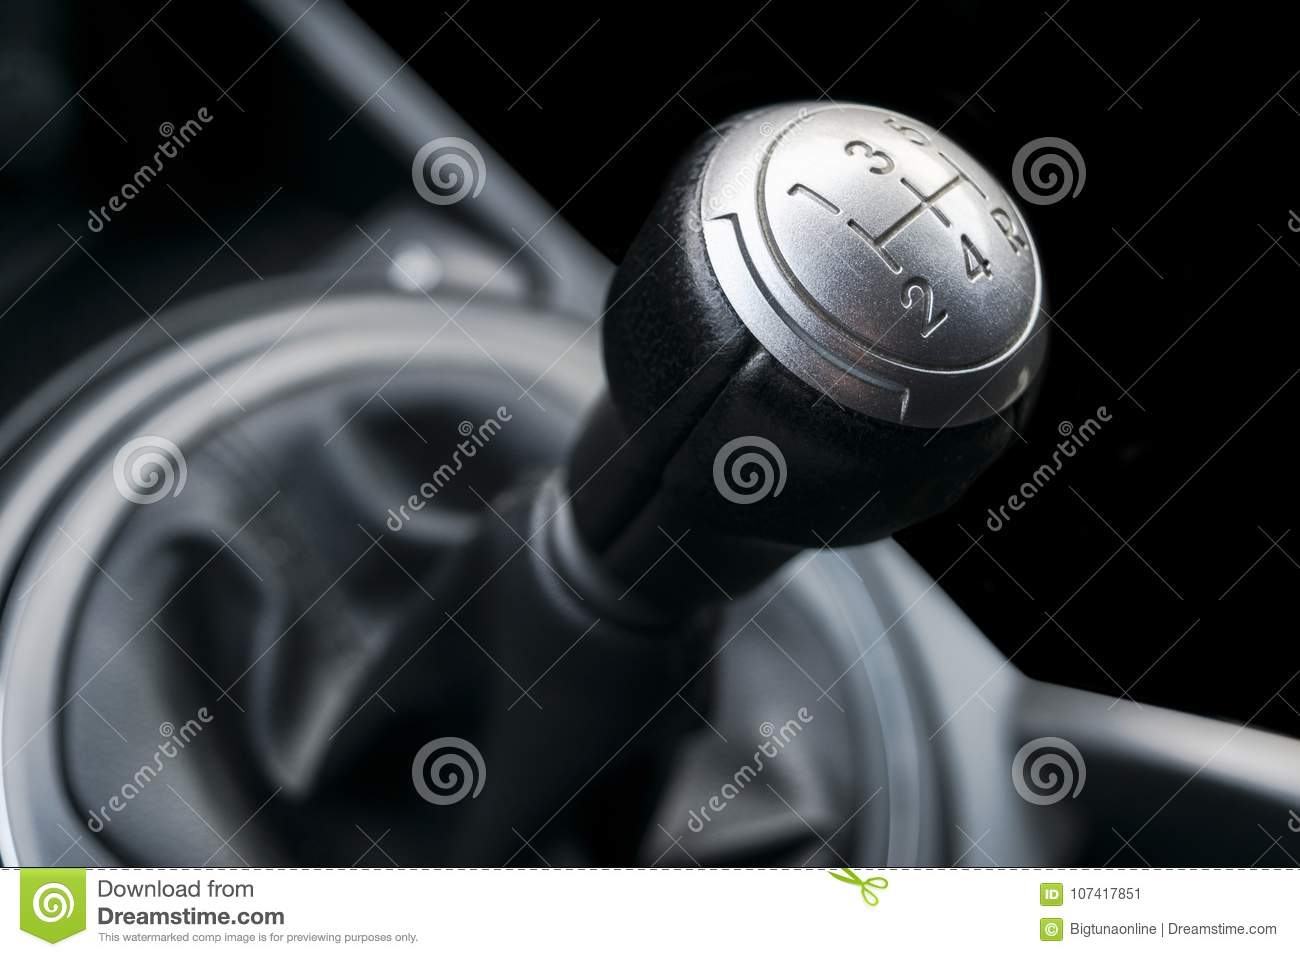 Close up view of a gear lever shift. Manual gearbox. Car interior details. Car transmission. Soft lighting. Abstract view